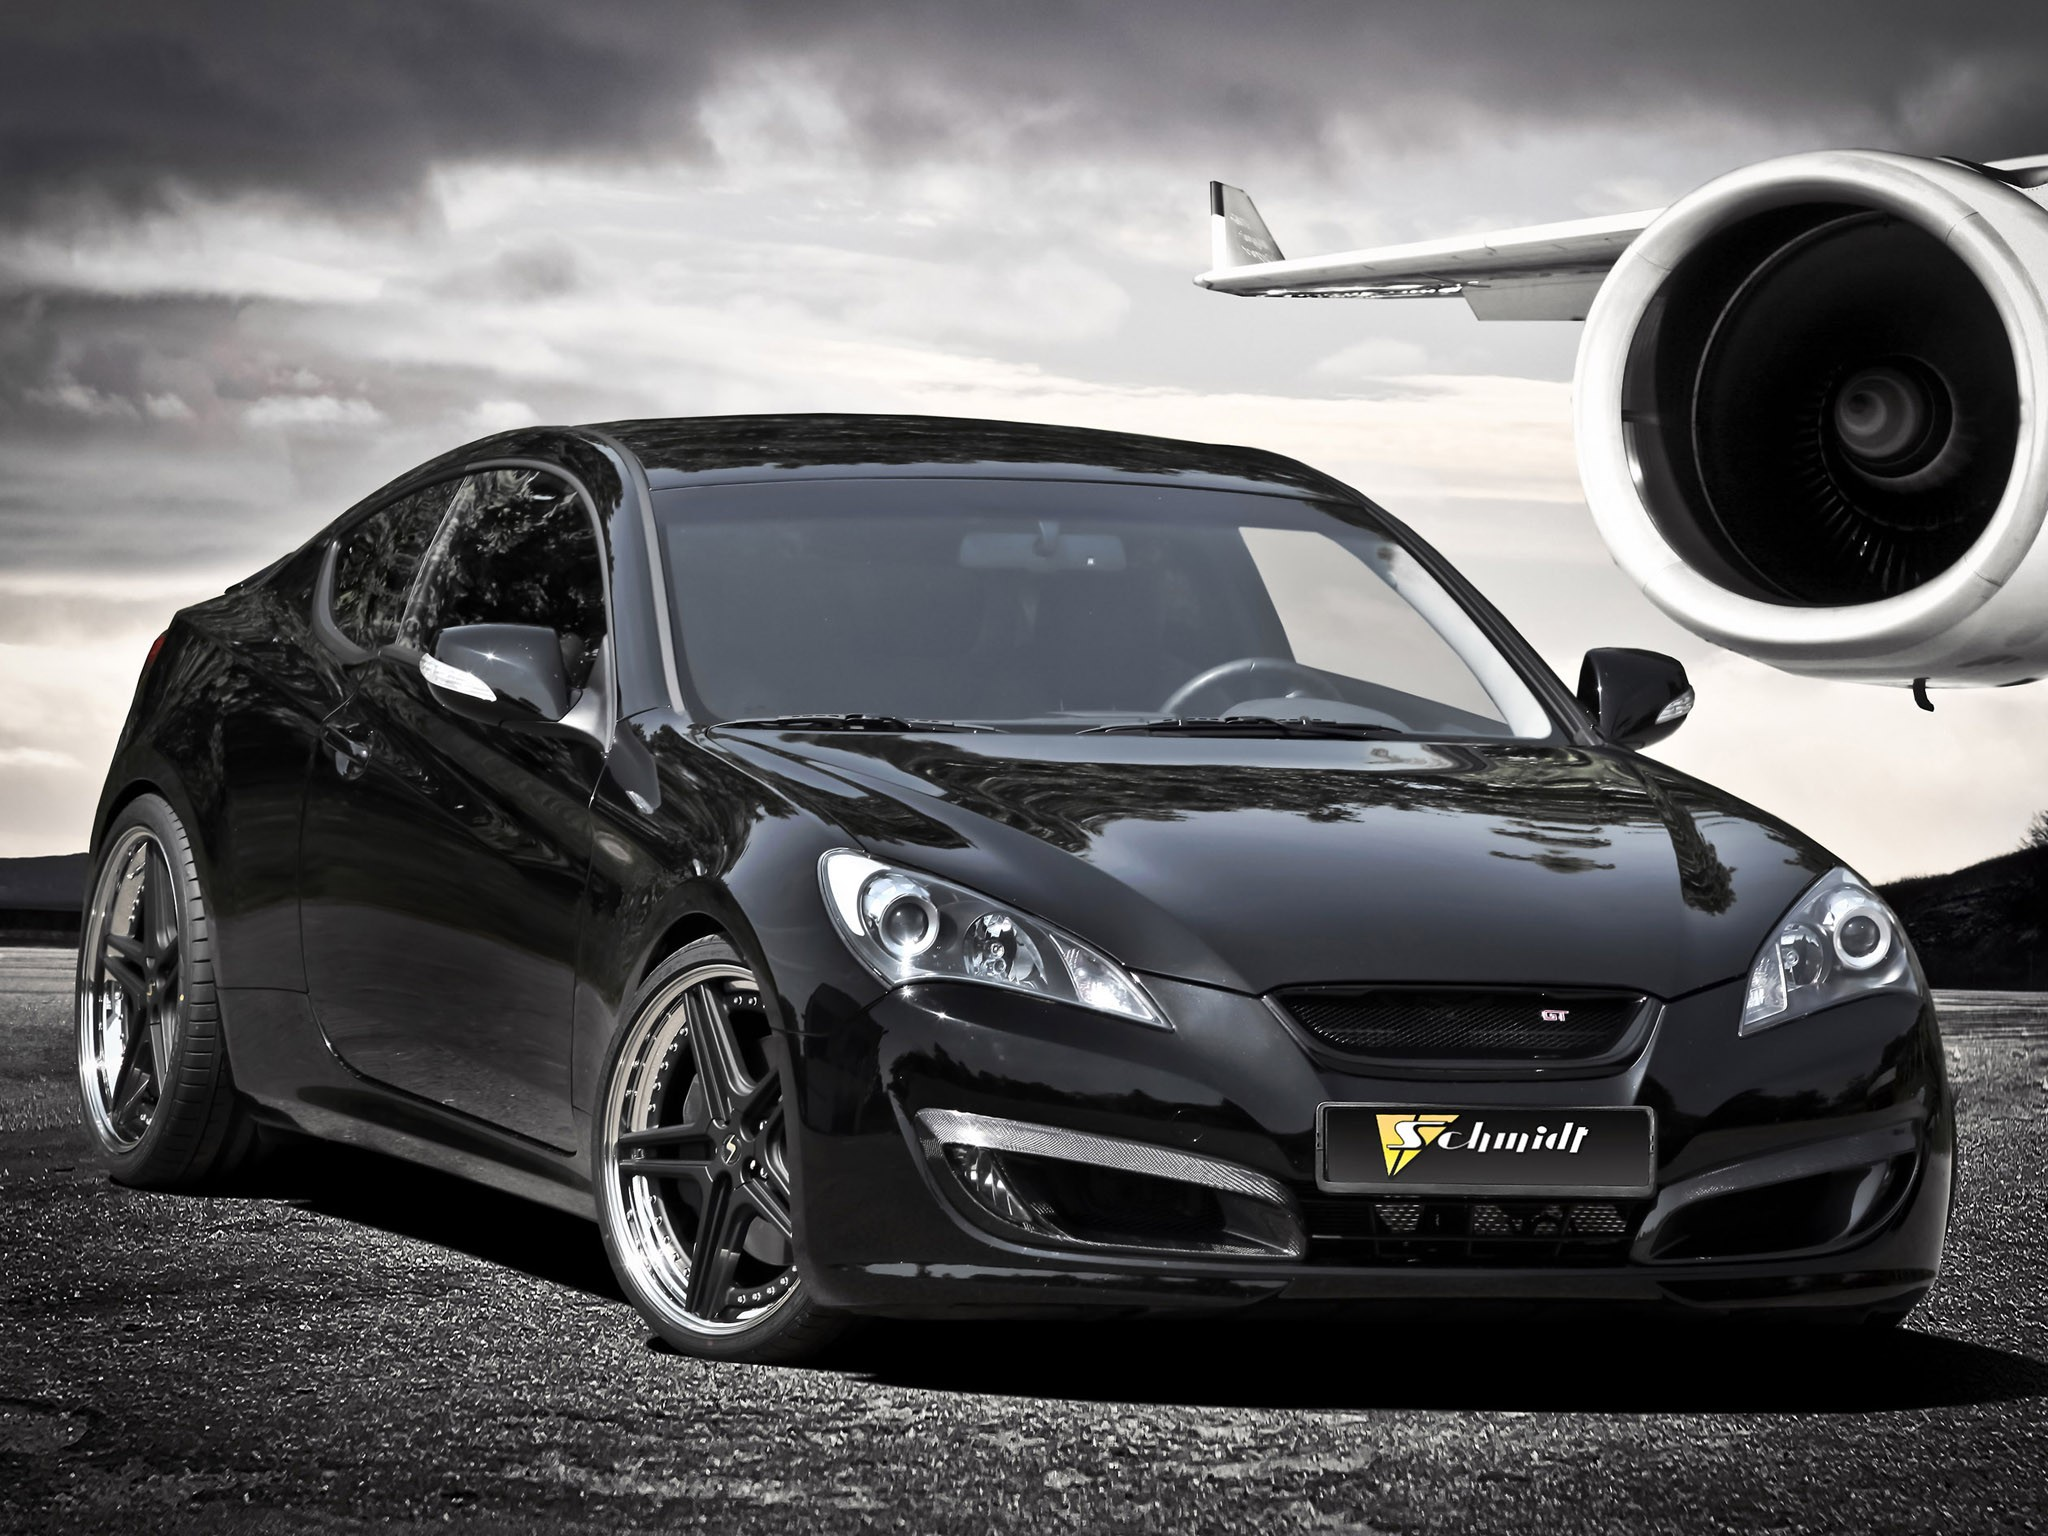 Hyundai Genesis Coupe Project Panther (2012) - Schmidt Revolution